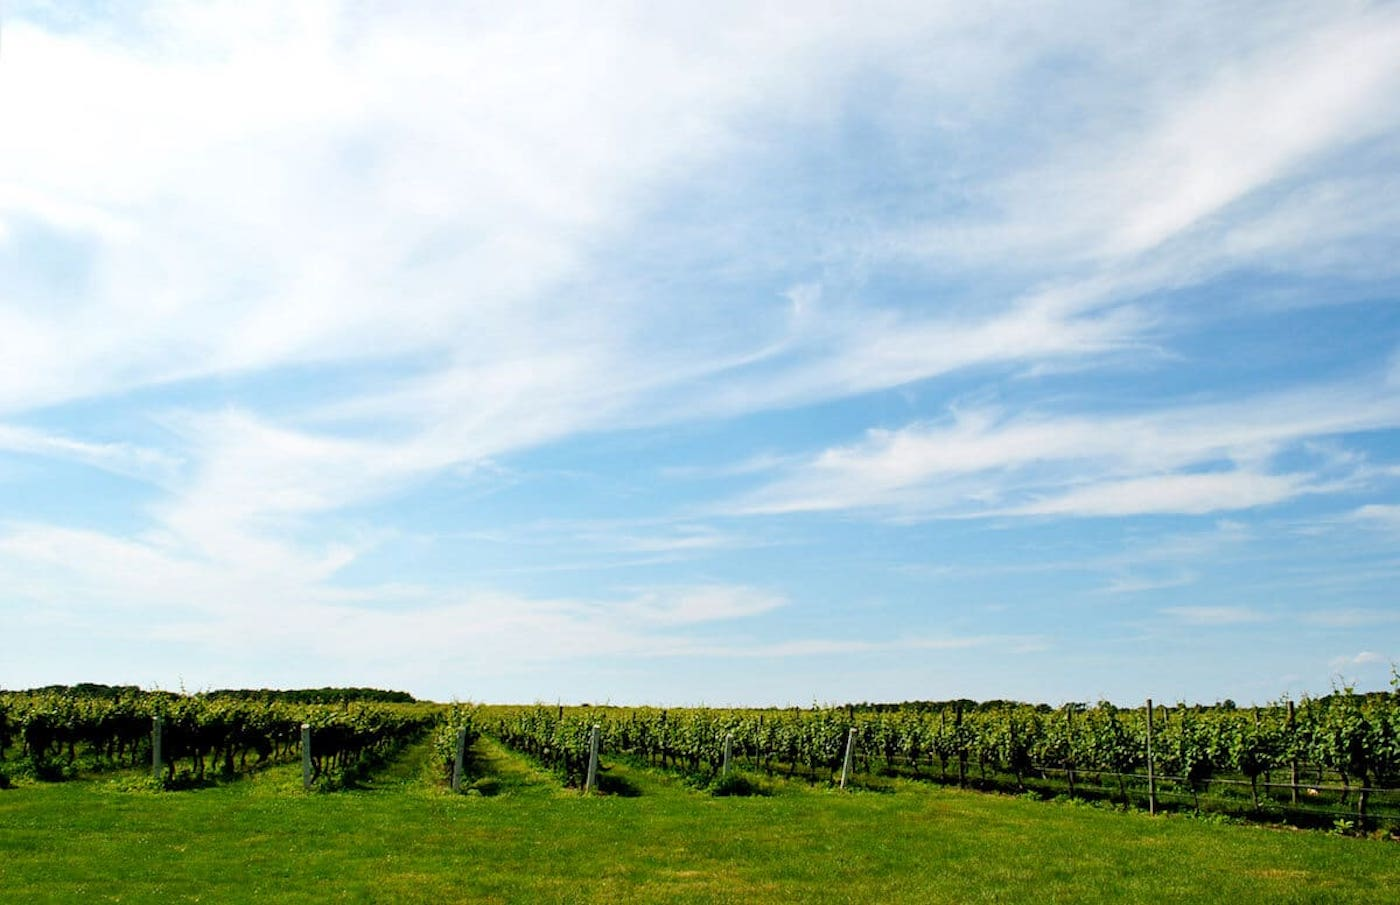 Day Trips from NYC- North Fork Wineries